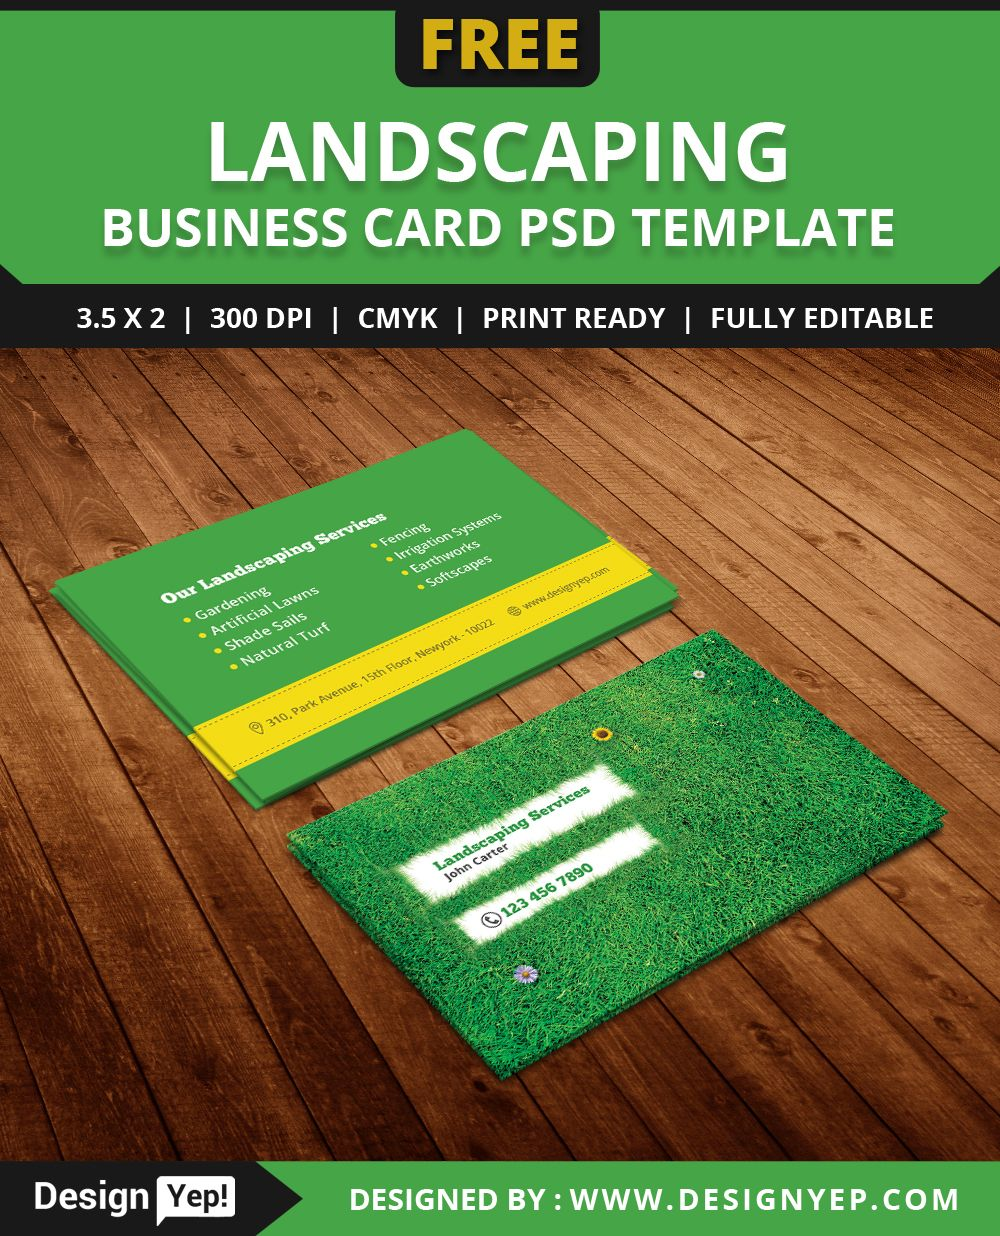 Free landscaping business card template psd free business card free landscaping business card template psd wajeb Gallery